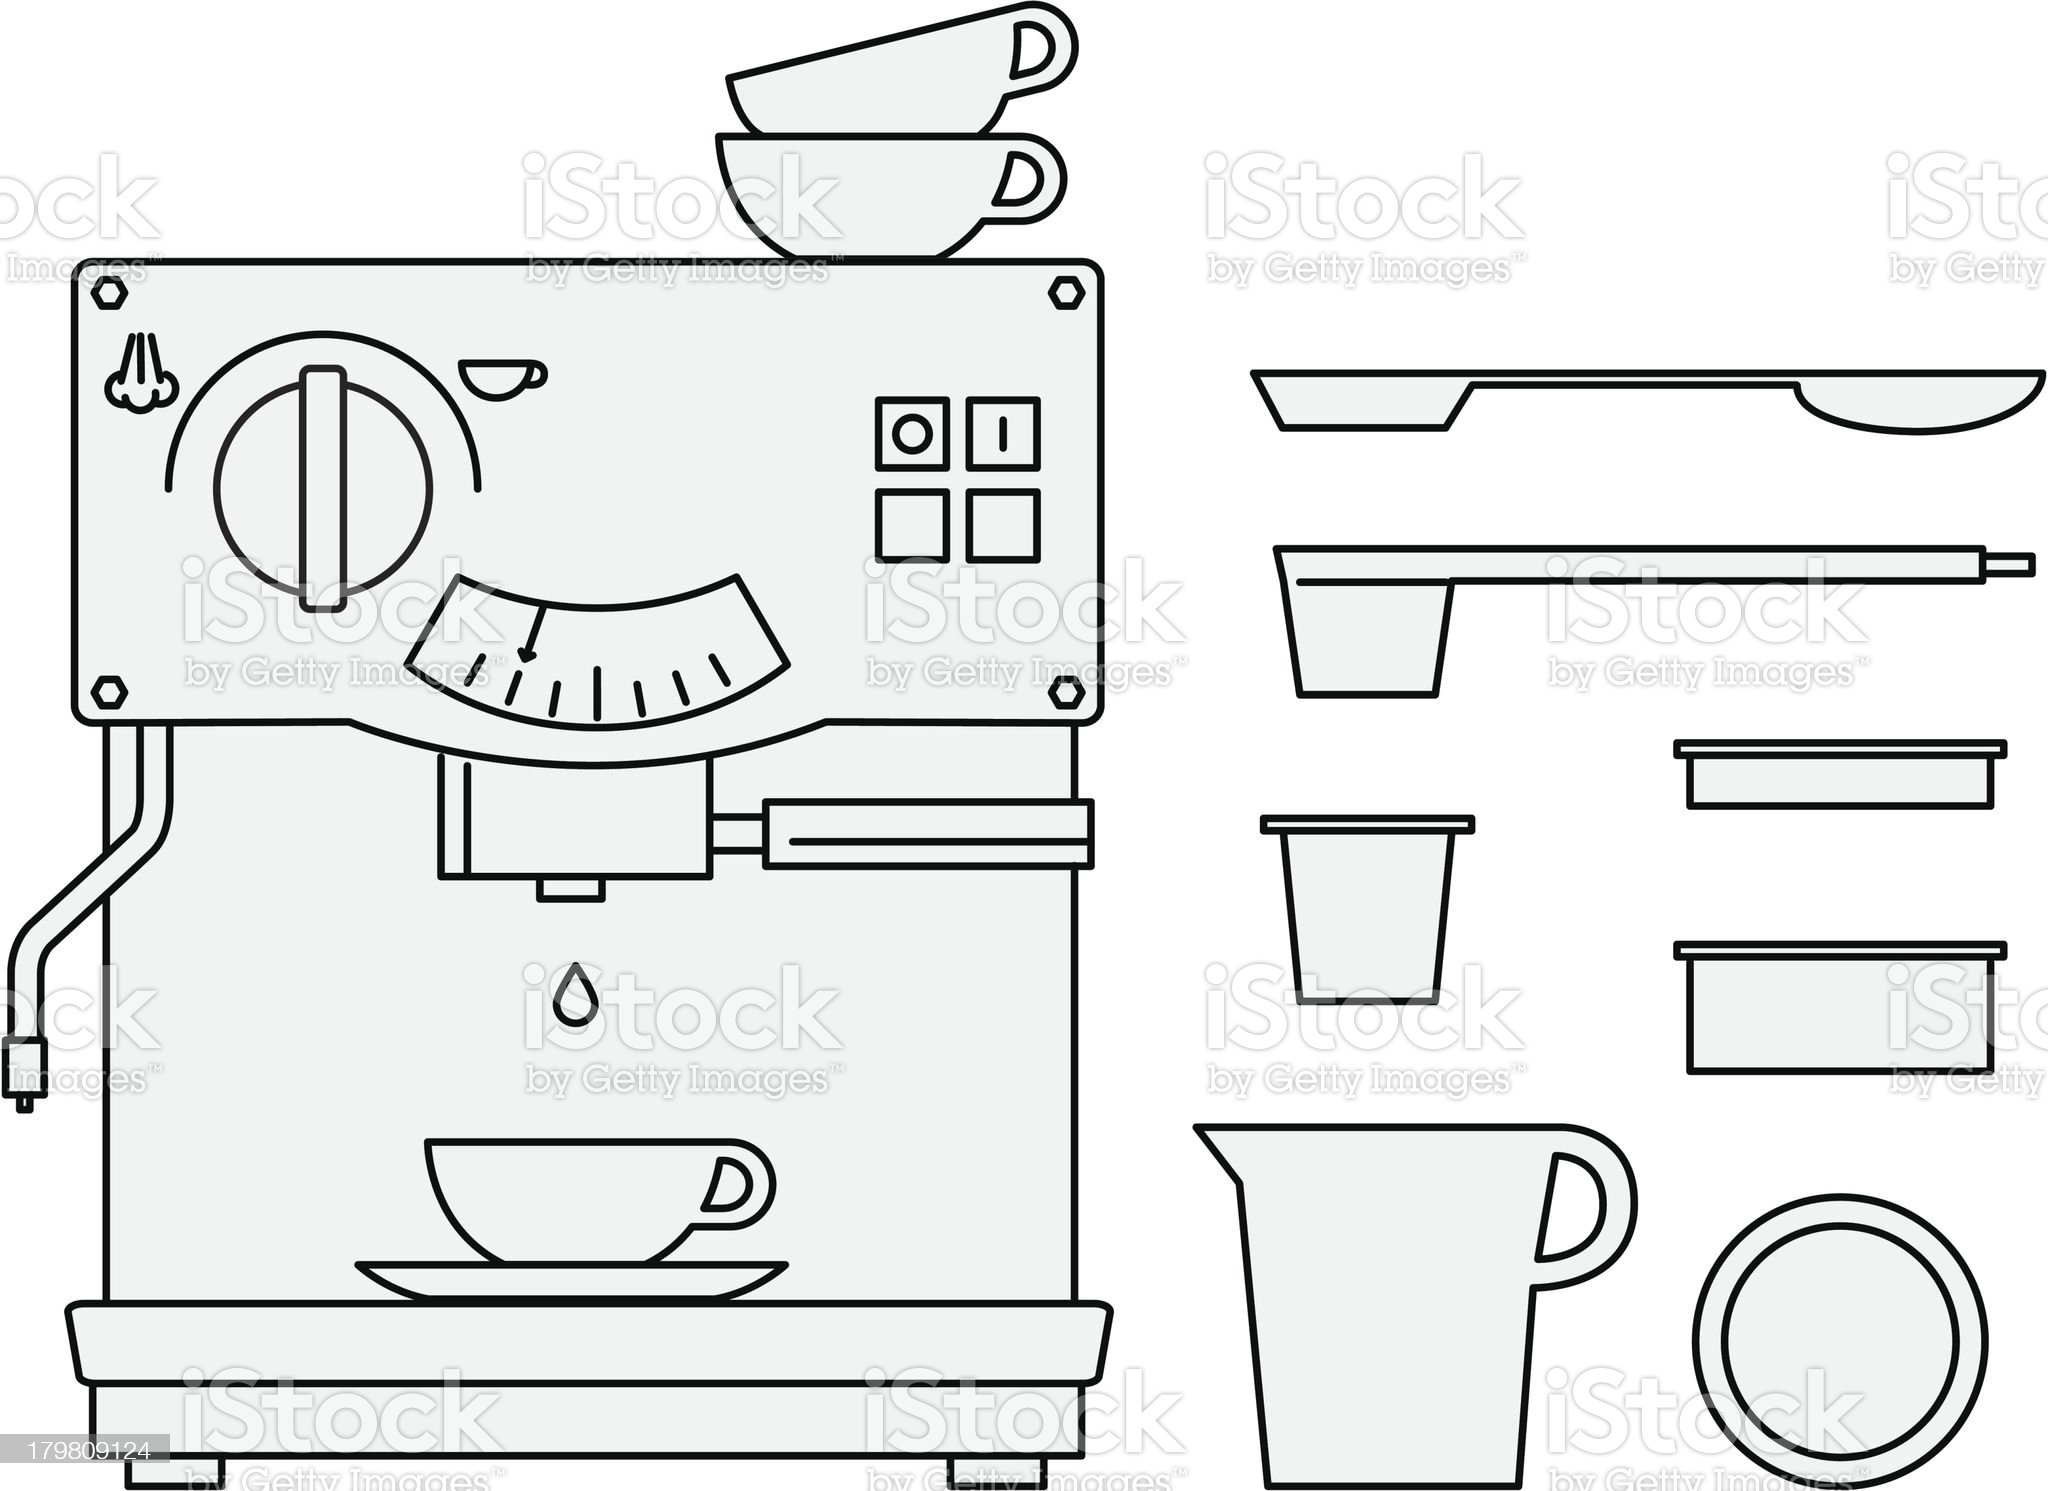 Simple coffee maker icons royalty-free stock vector art